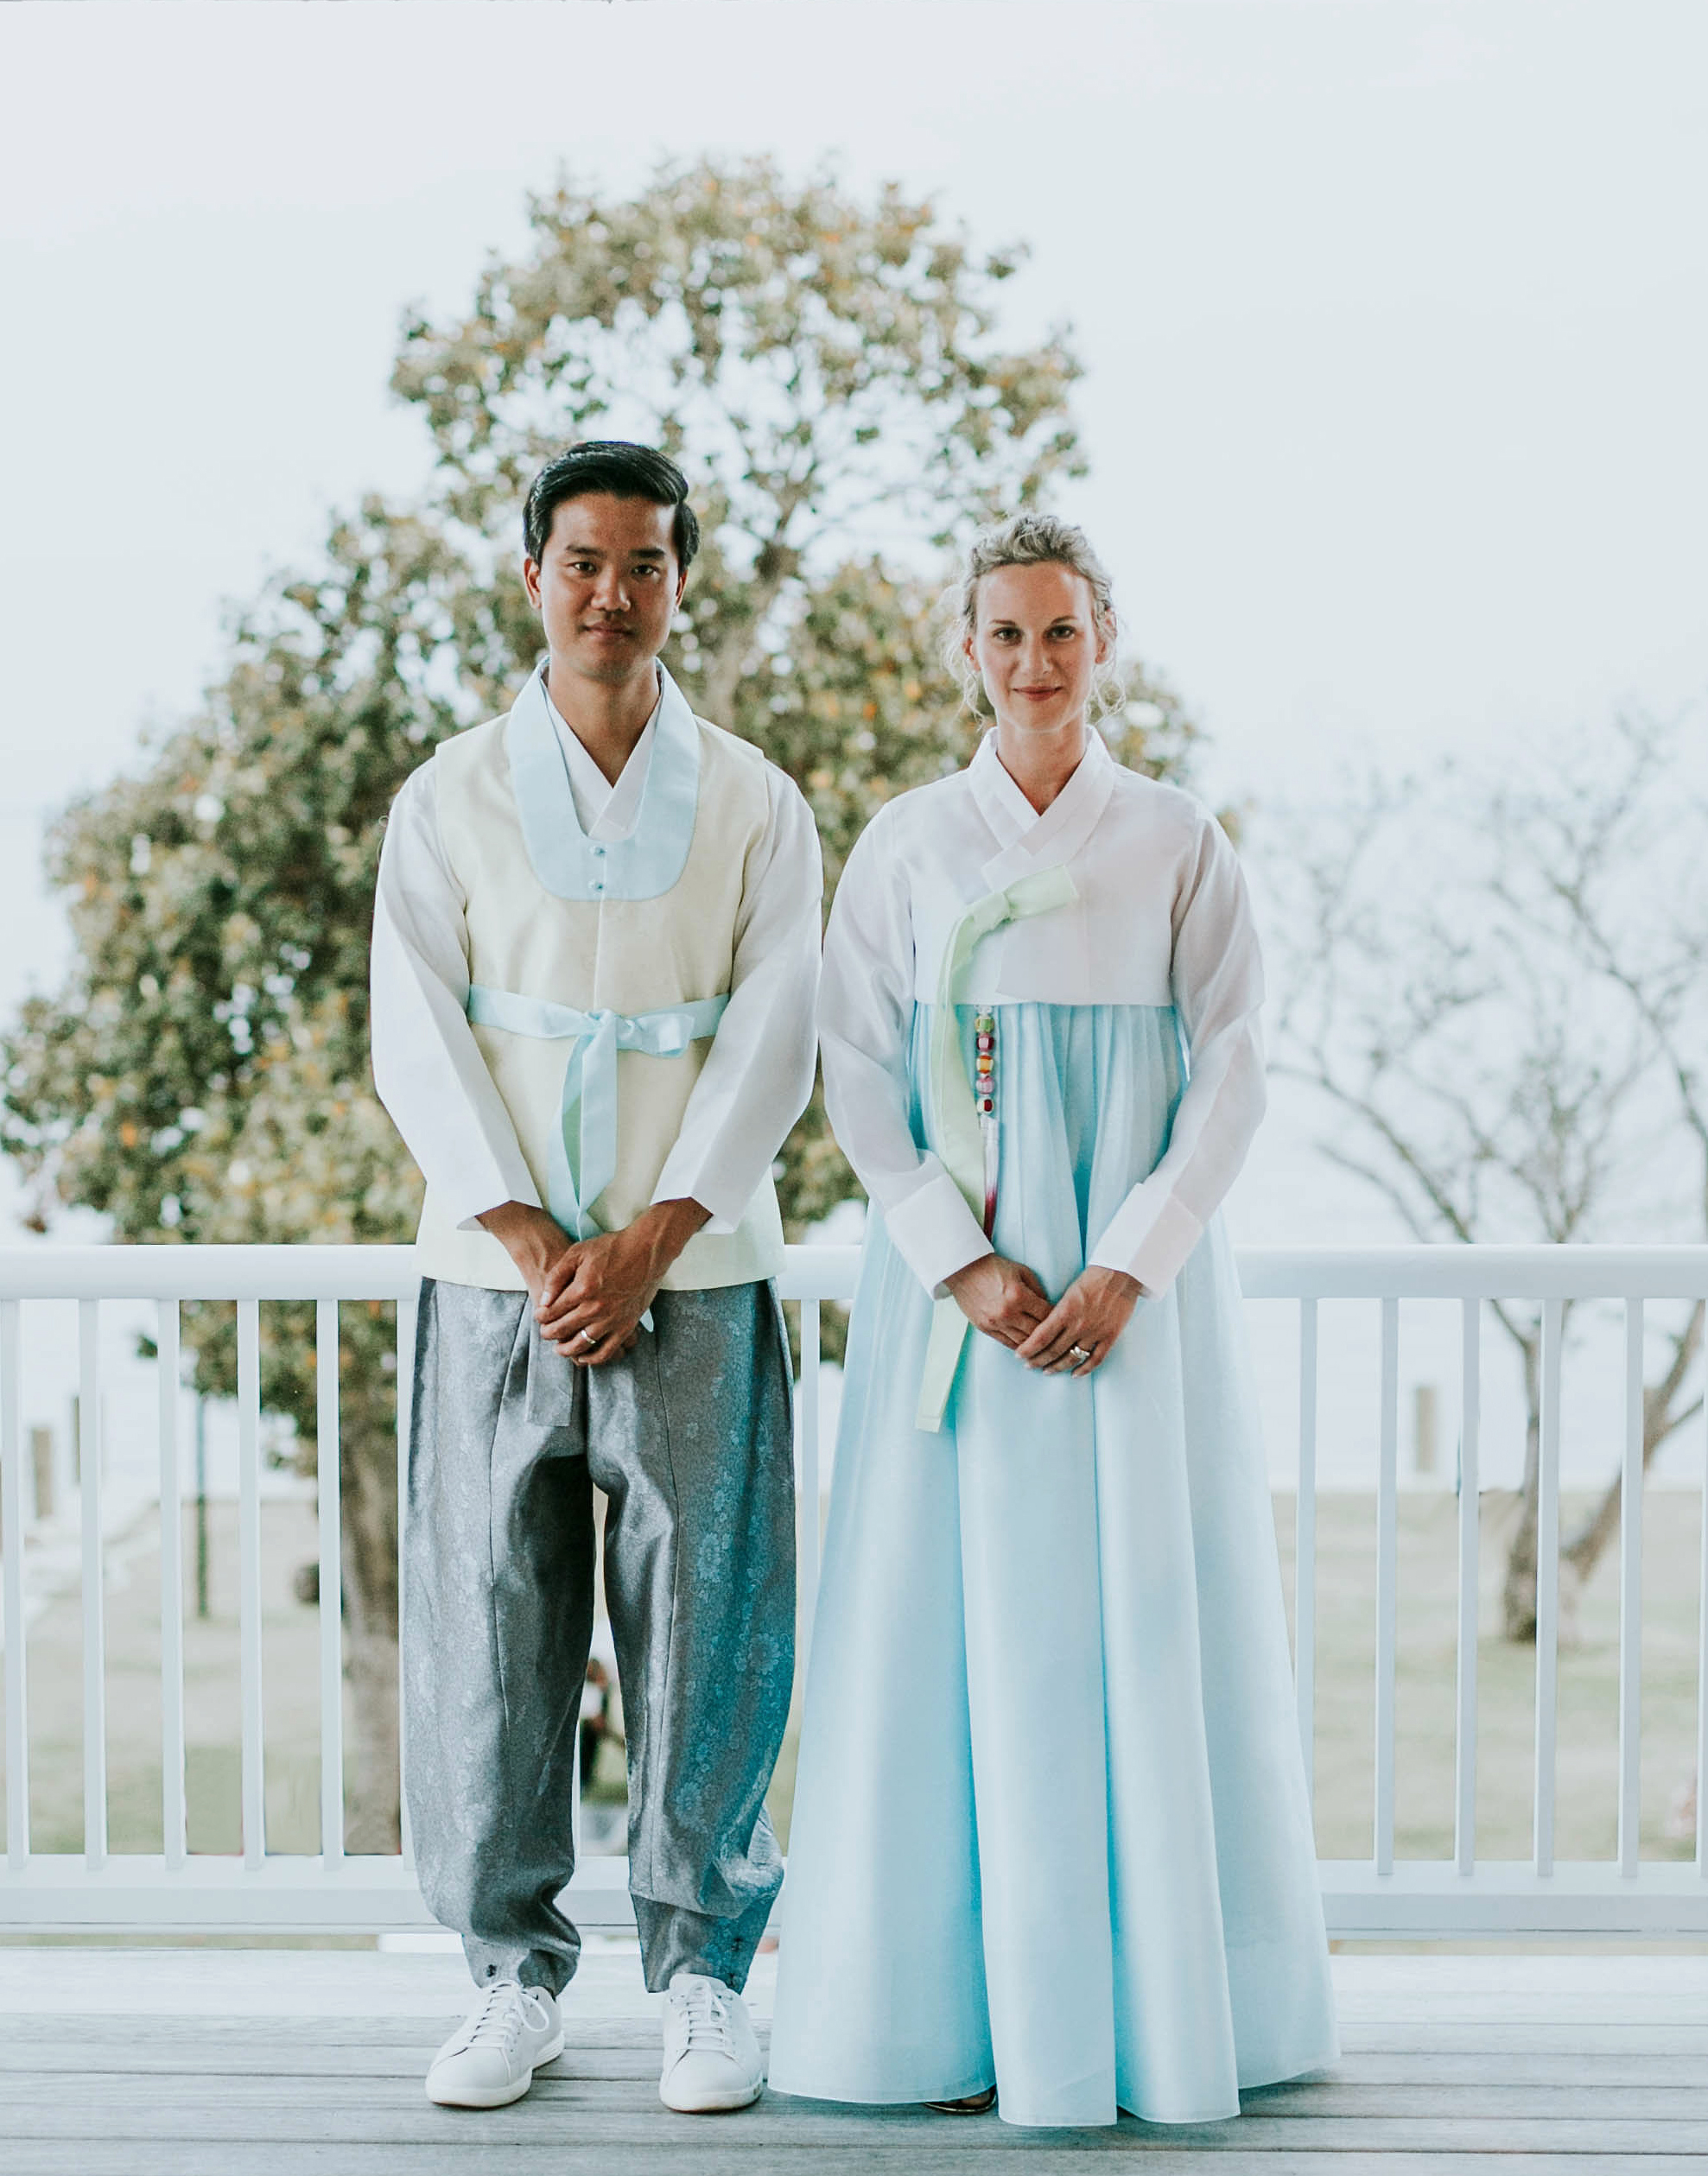 leah michael wedding couple hanbok